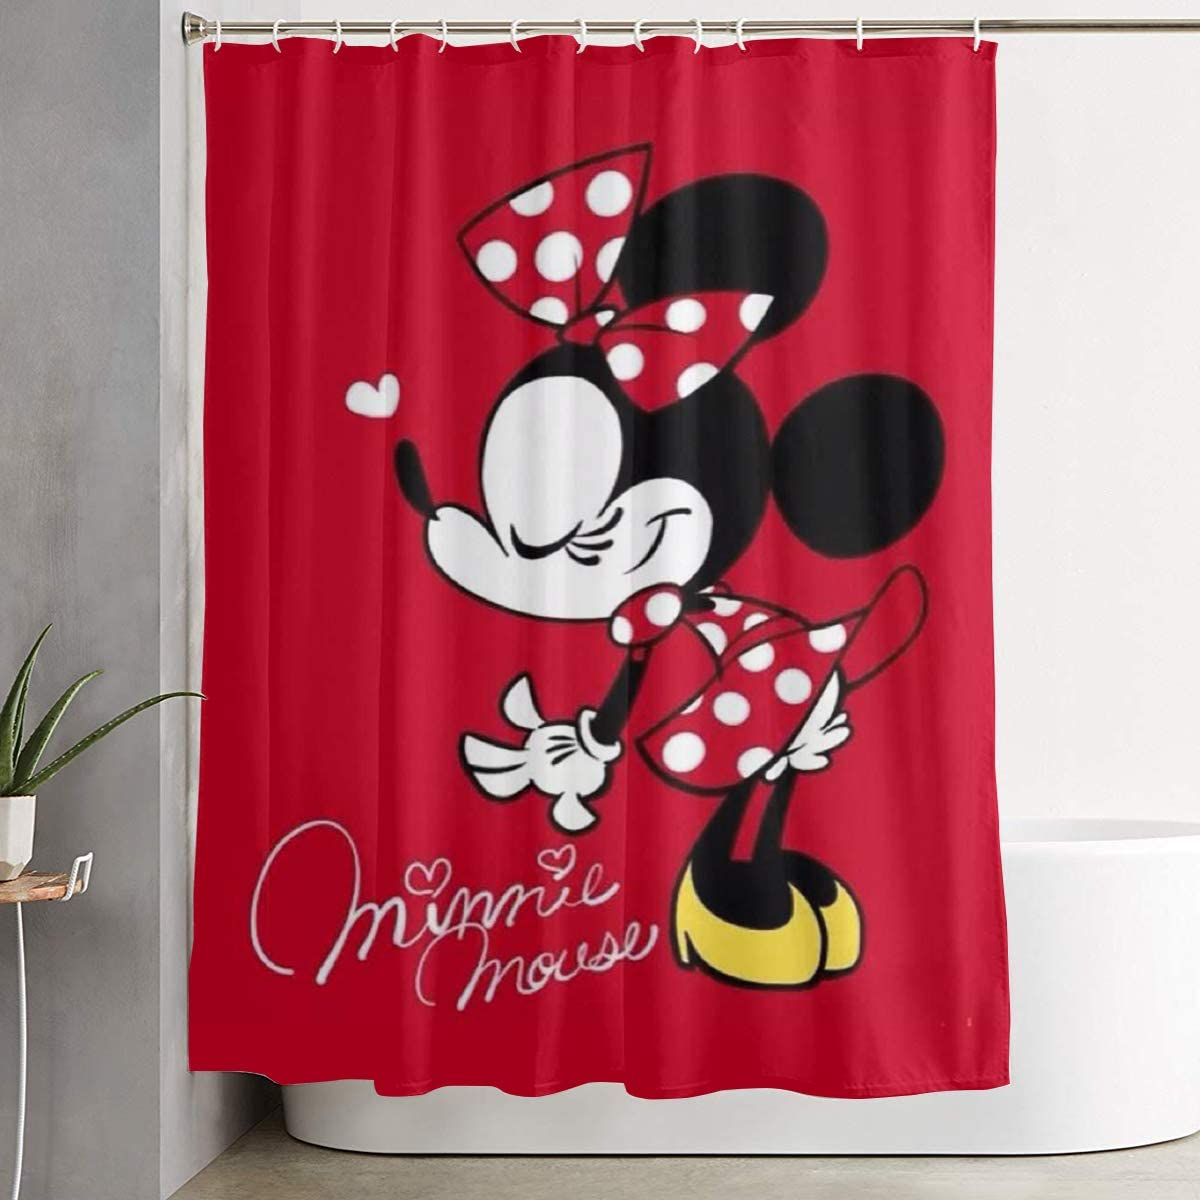 LIUYAN Shower Curtain with Hook - Beautiful Minnie Mouse Waterproof Polyester Fabric Bathroom Decor 60 X 72 Inches